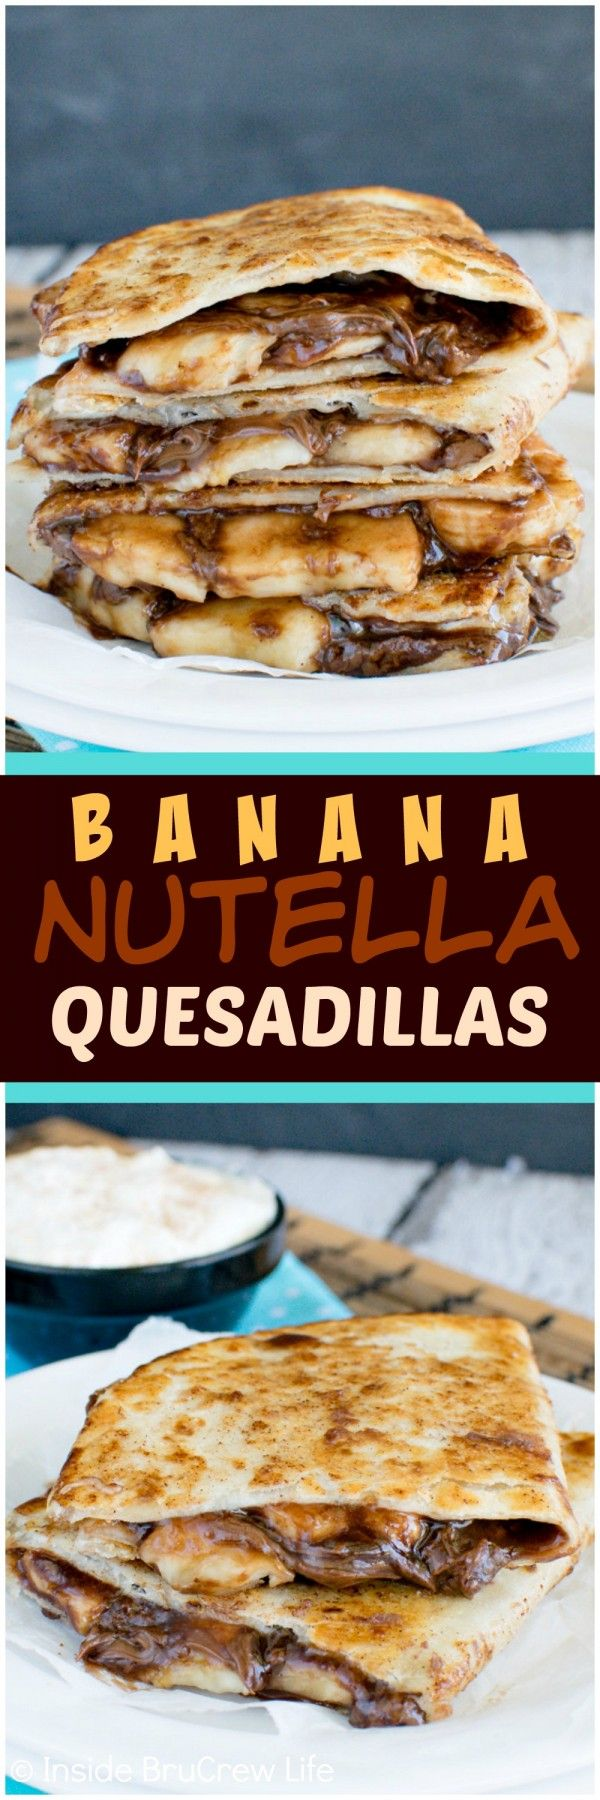 Banana Nutella Quesadillas - cinnamon sugar tortillas filled with banana slices and Nutella makes an awesome no bake dessert recipe!